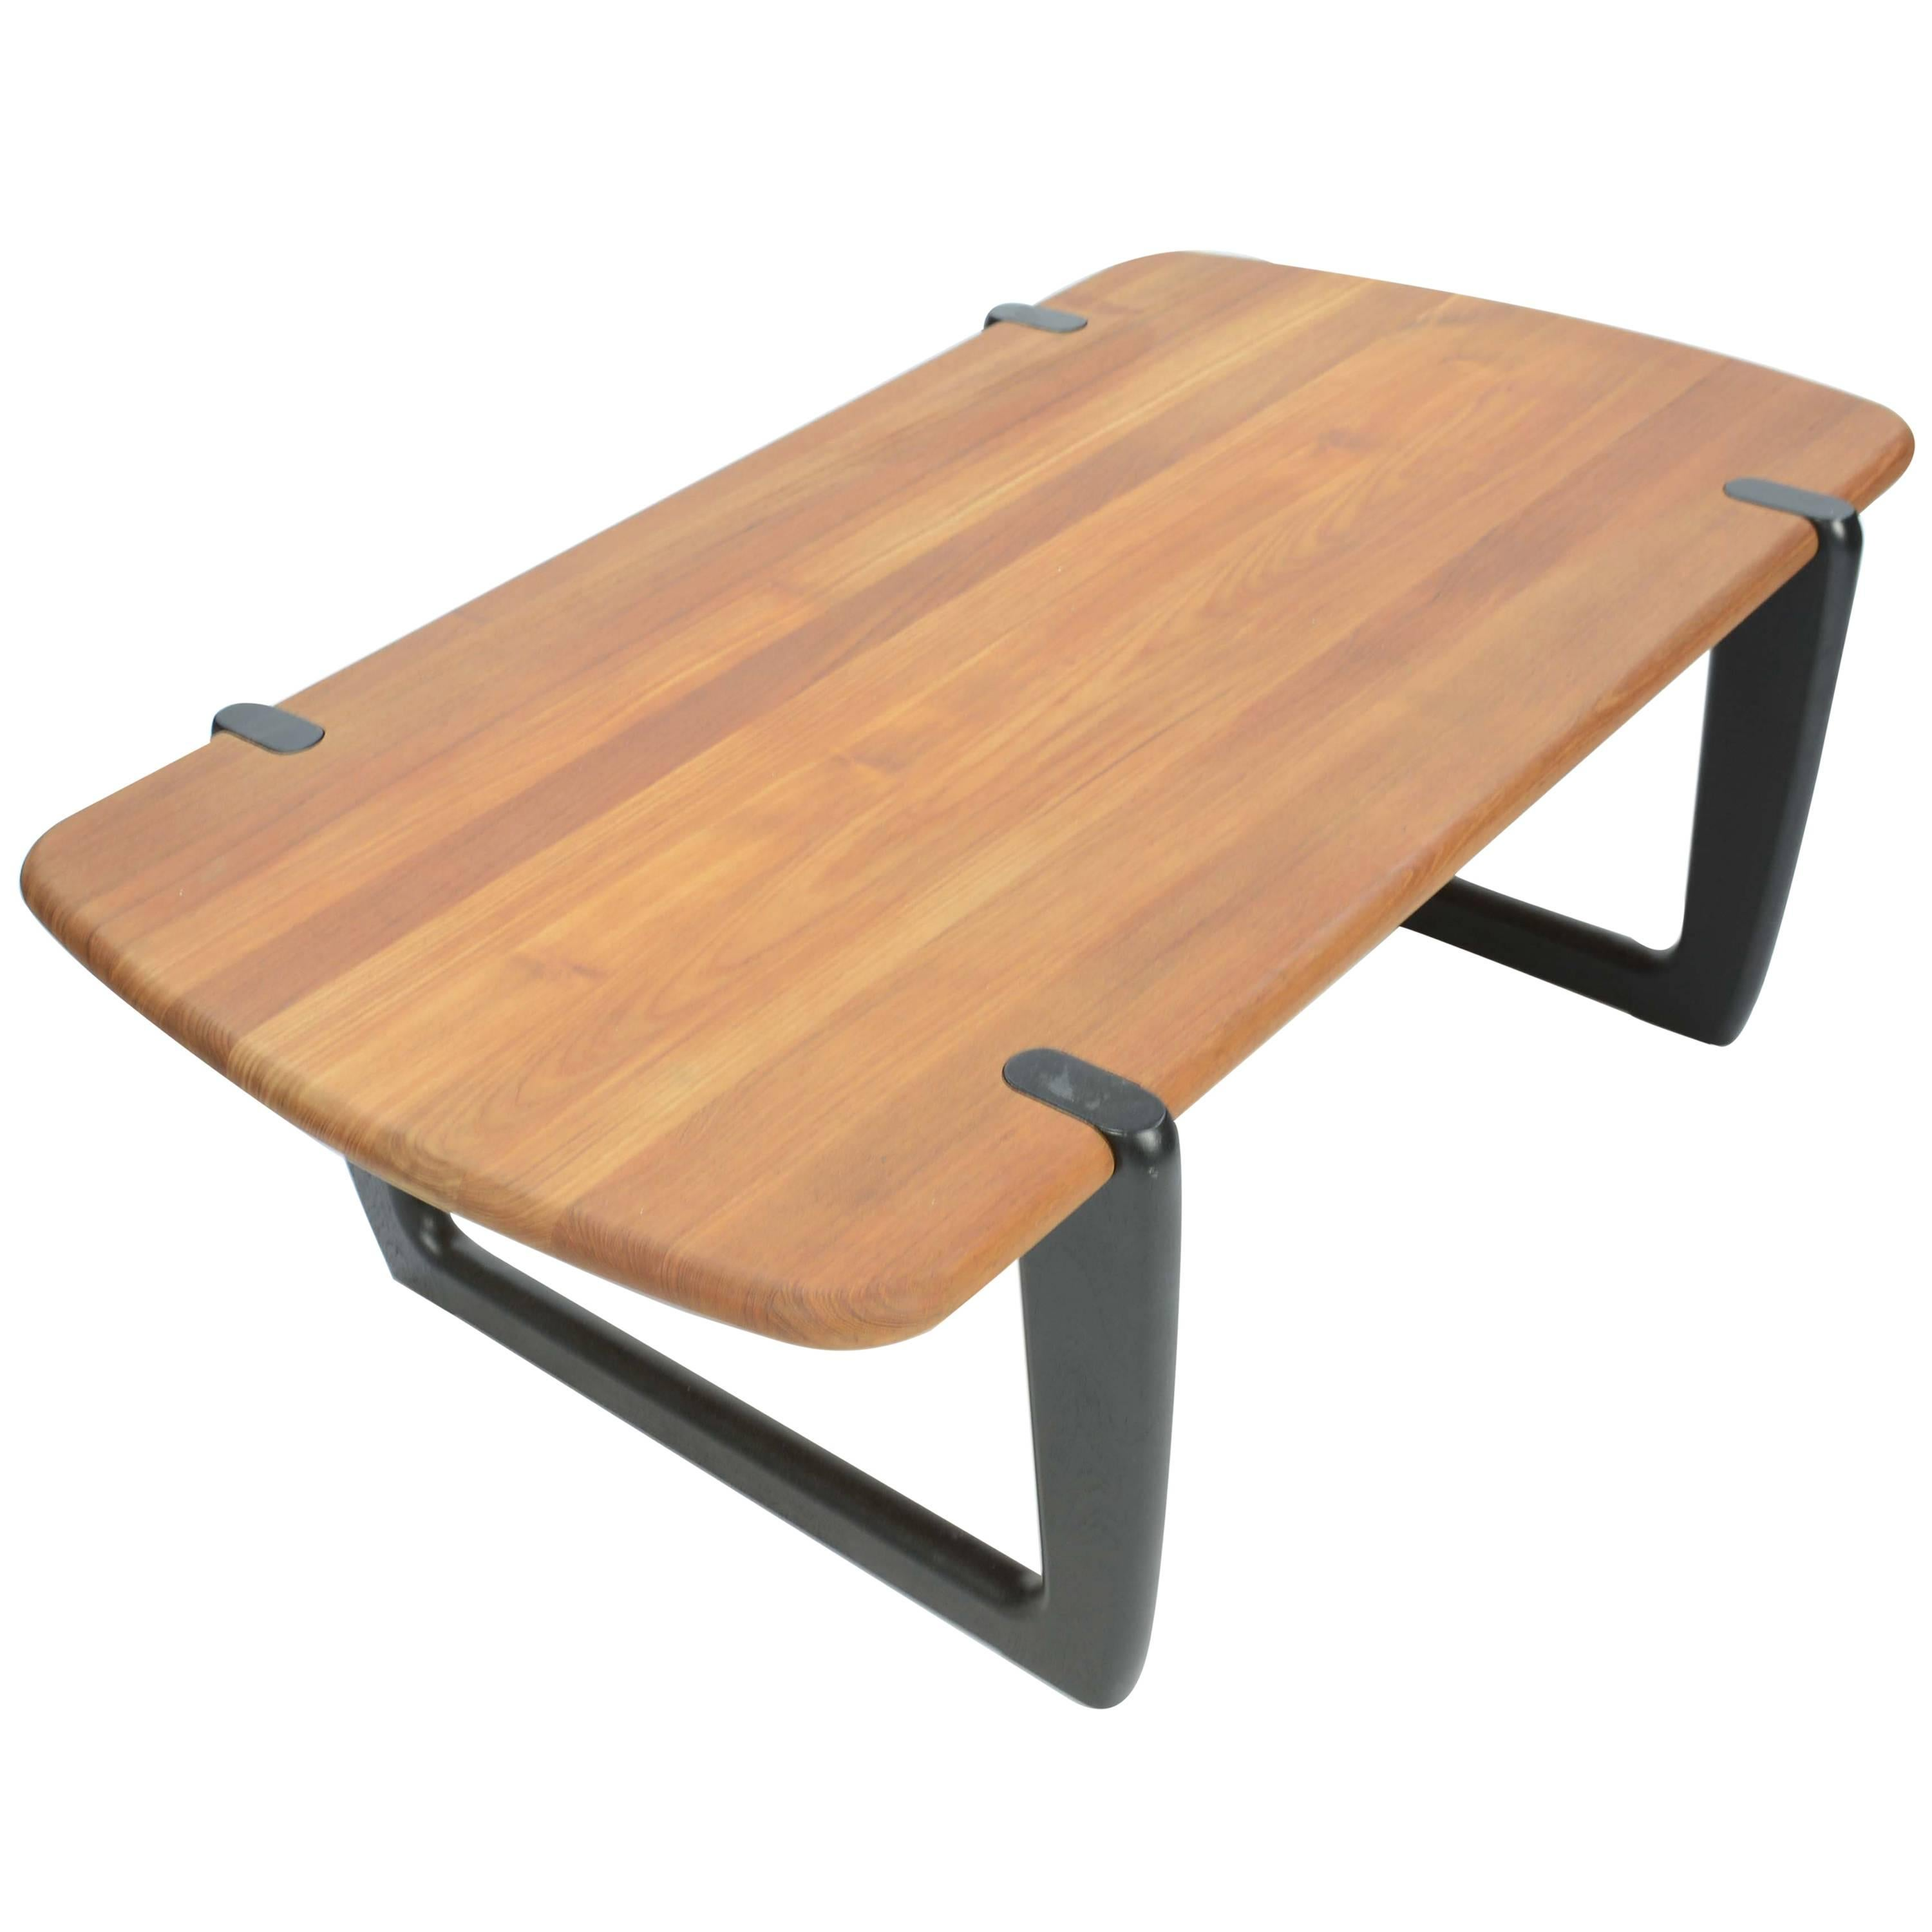 Large Danish Organic Shaped Coffee Table in Rosewood For Sale at